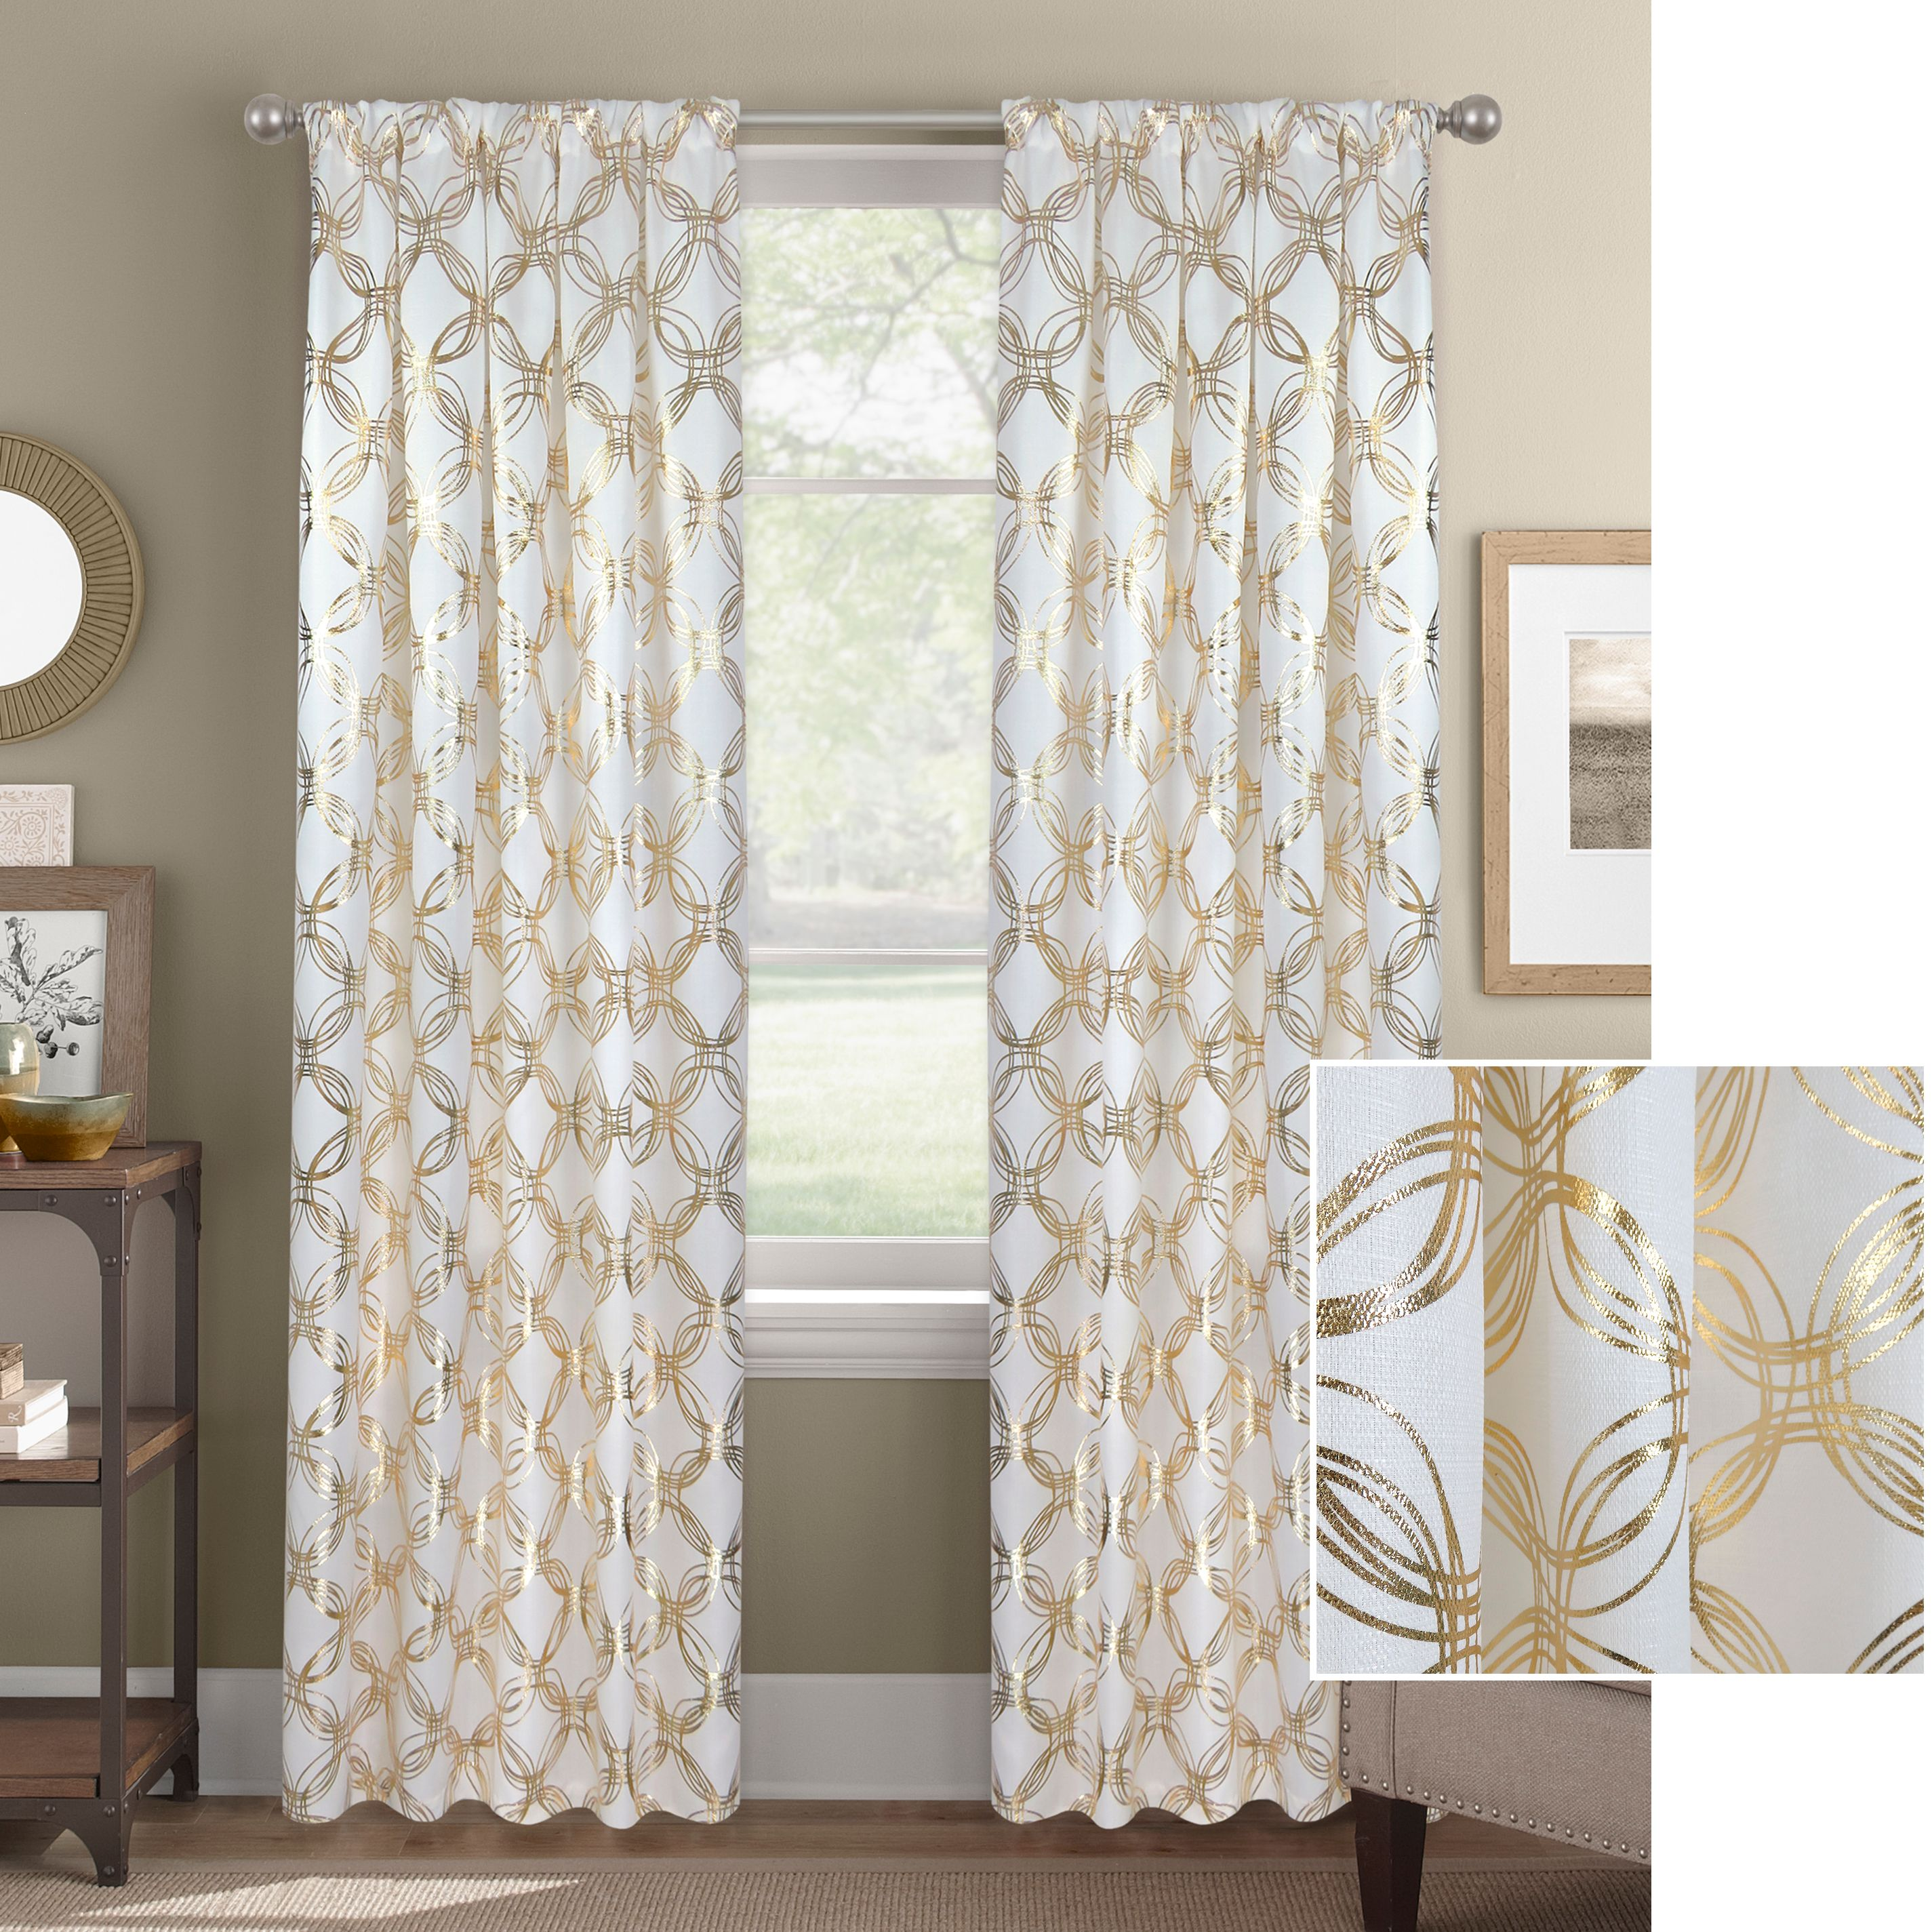 Better Homes and Gardens Chainlink Metallic Gold or Silver Window Curtain Panel